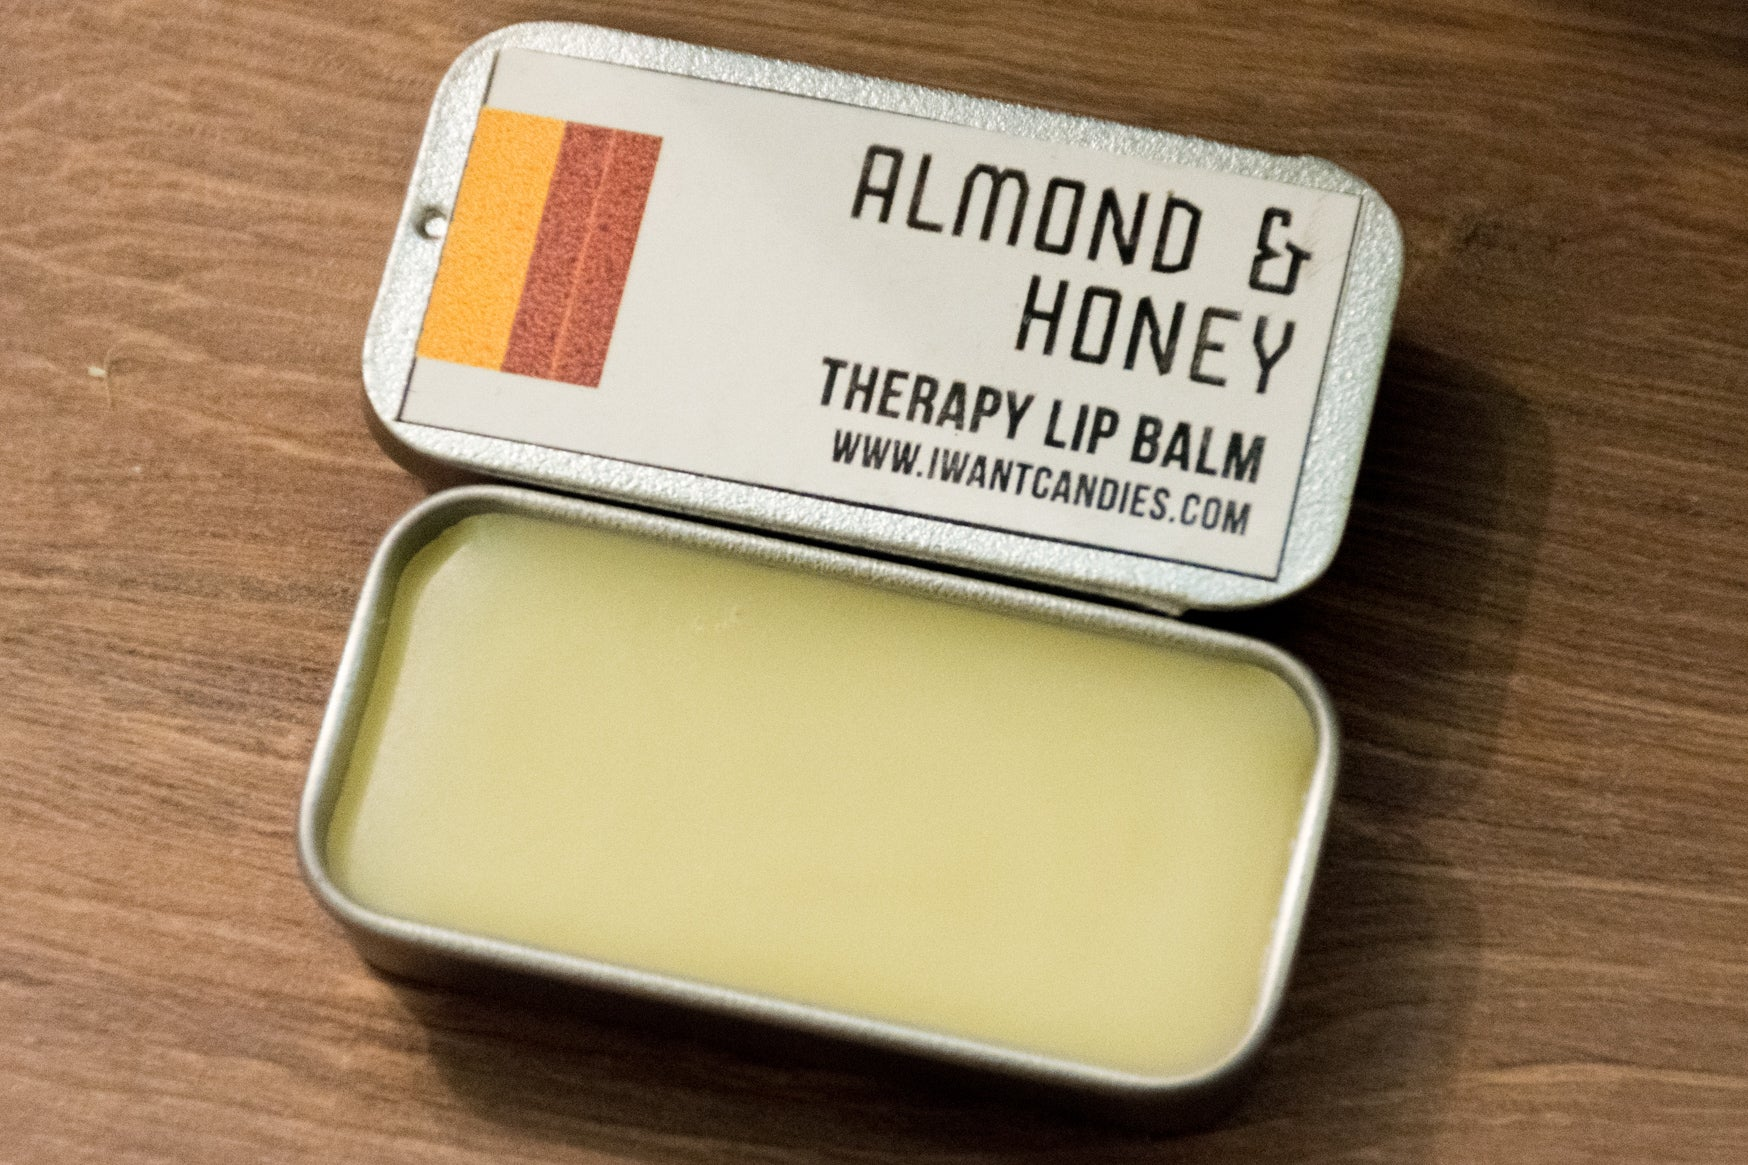 Almond & Honey Therapy Lip Balm